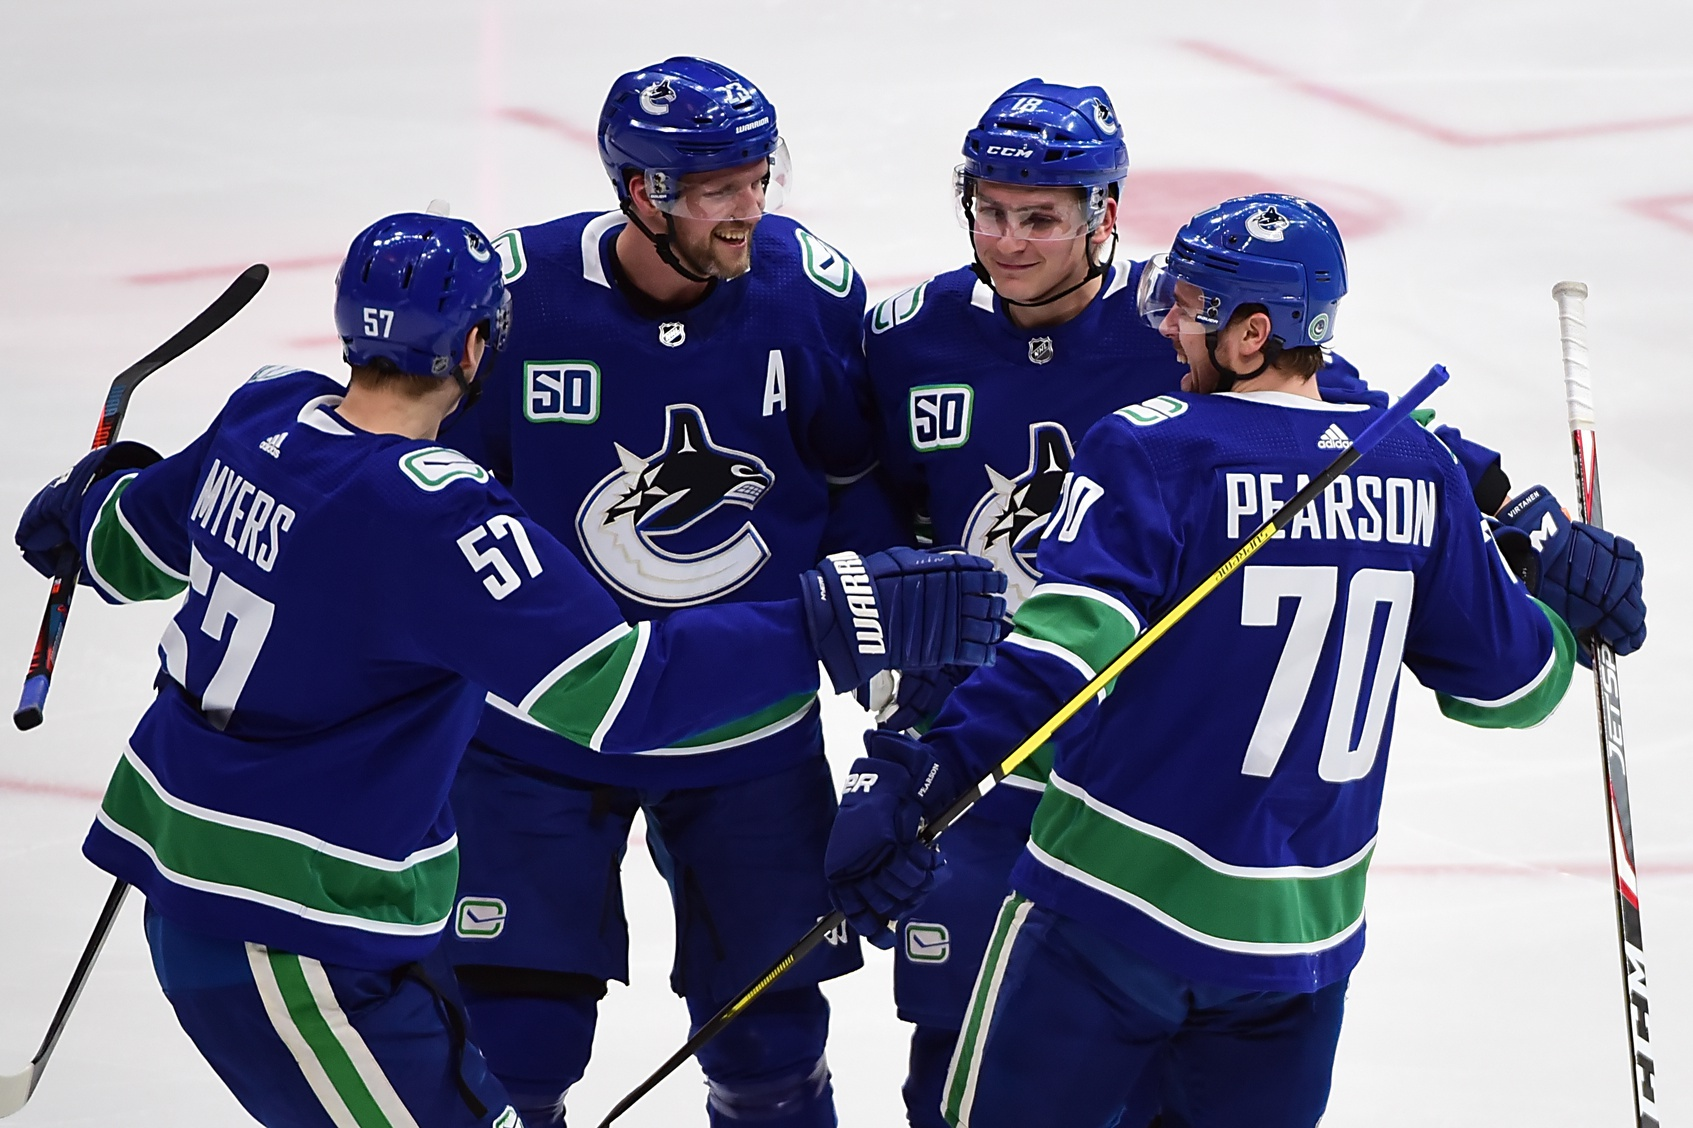 Sharks at Canucks 01/18/20 – Odds and NHL Betting Trends